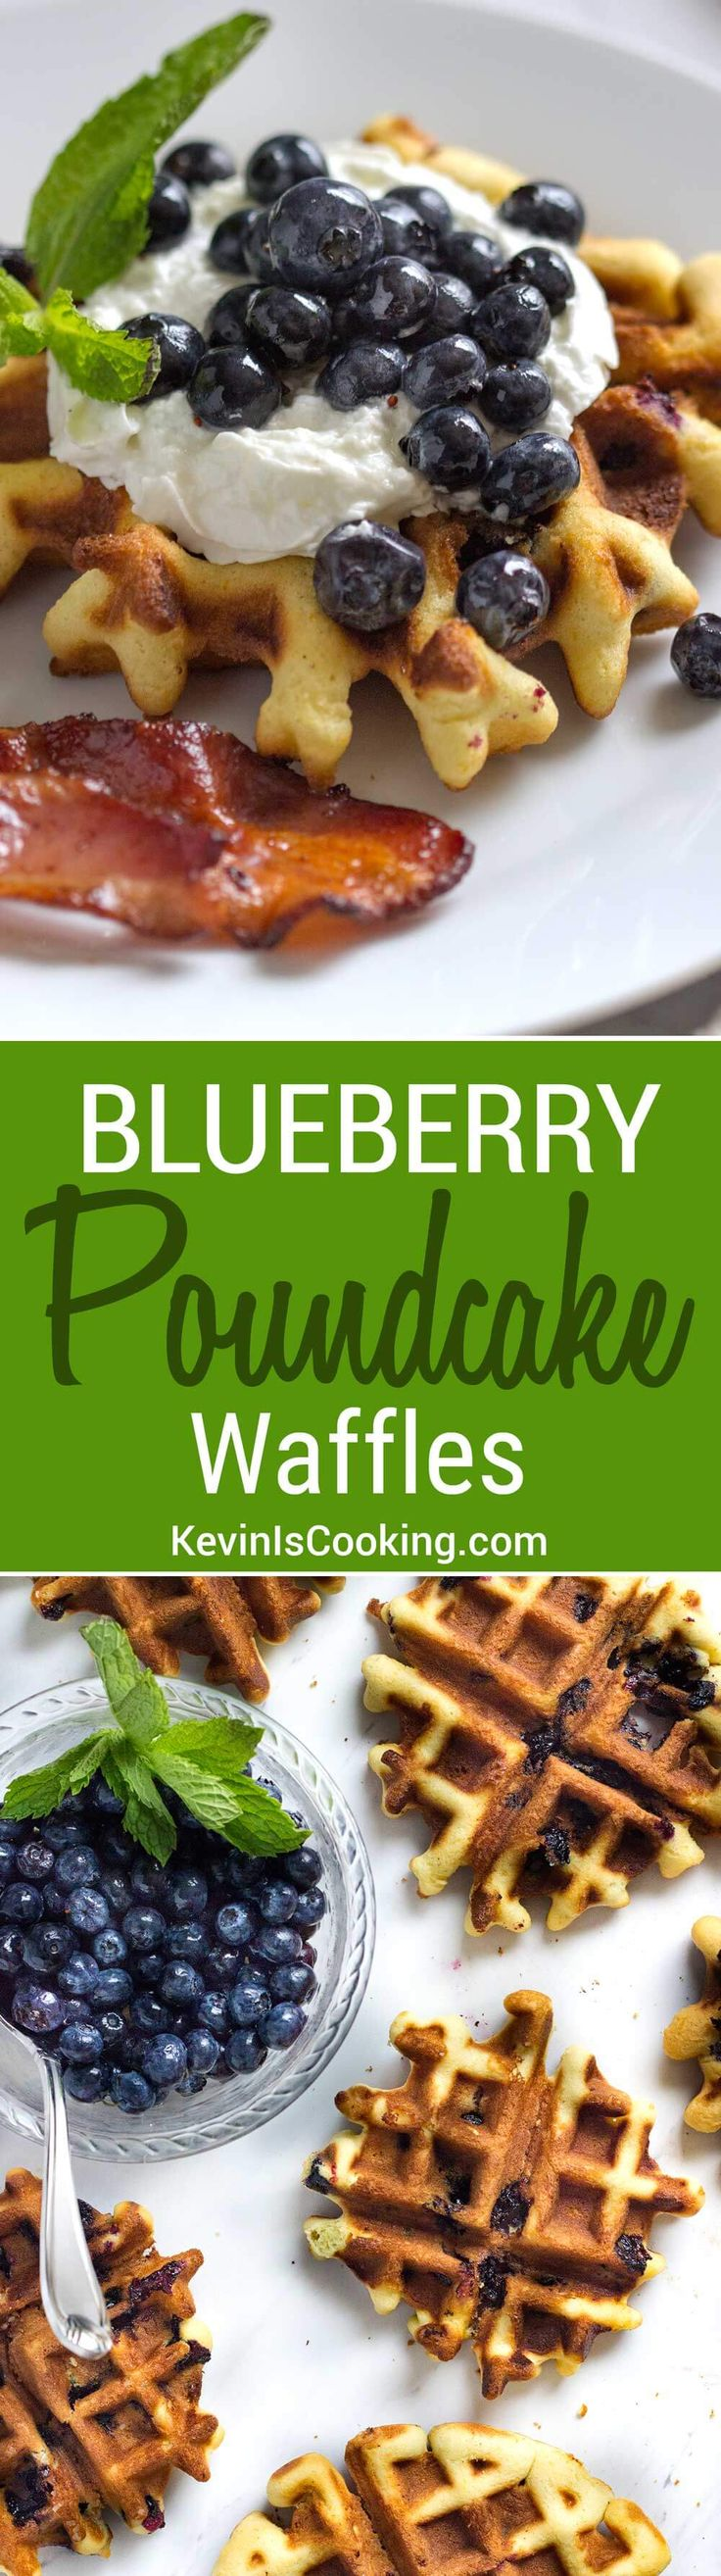 best images about Breakfastunch foods on Pinterest